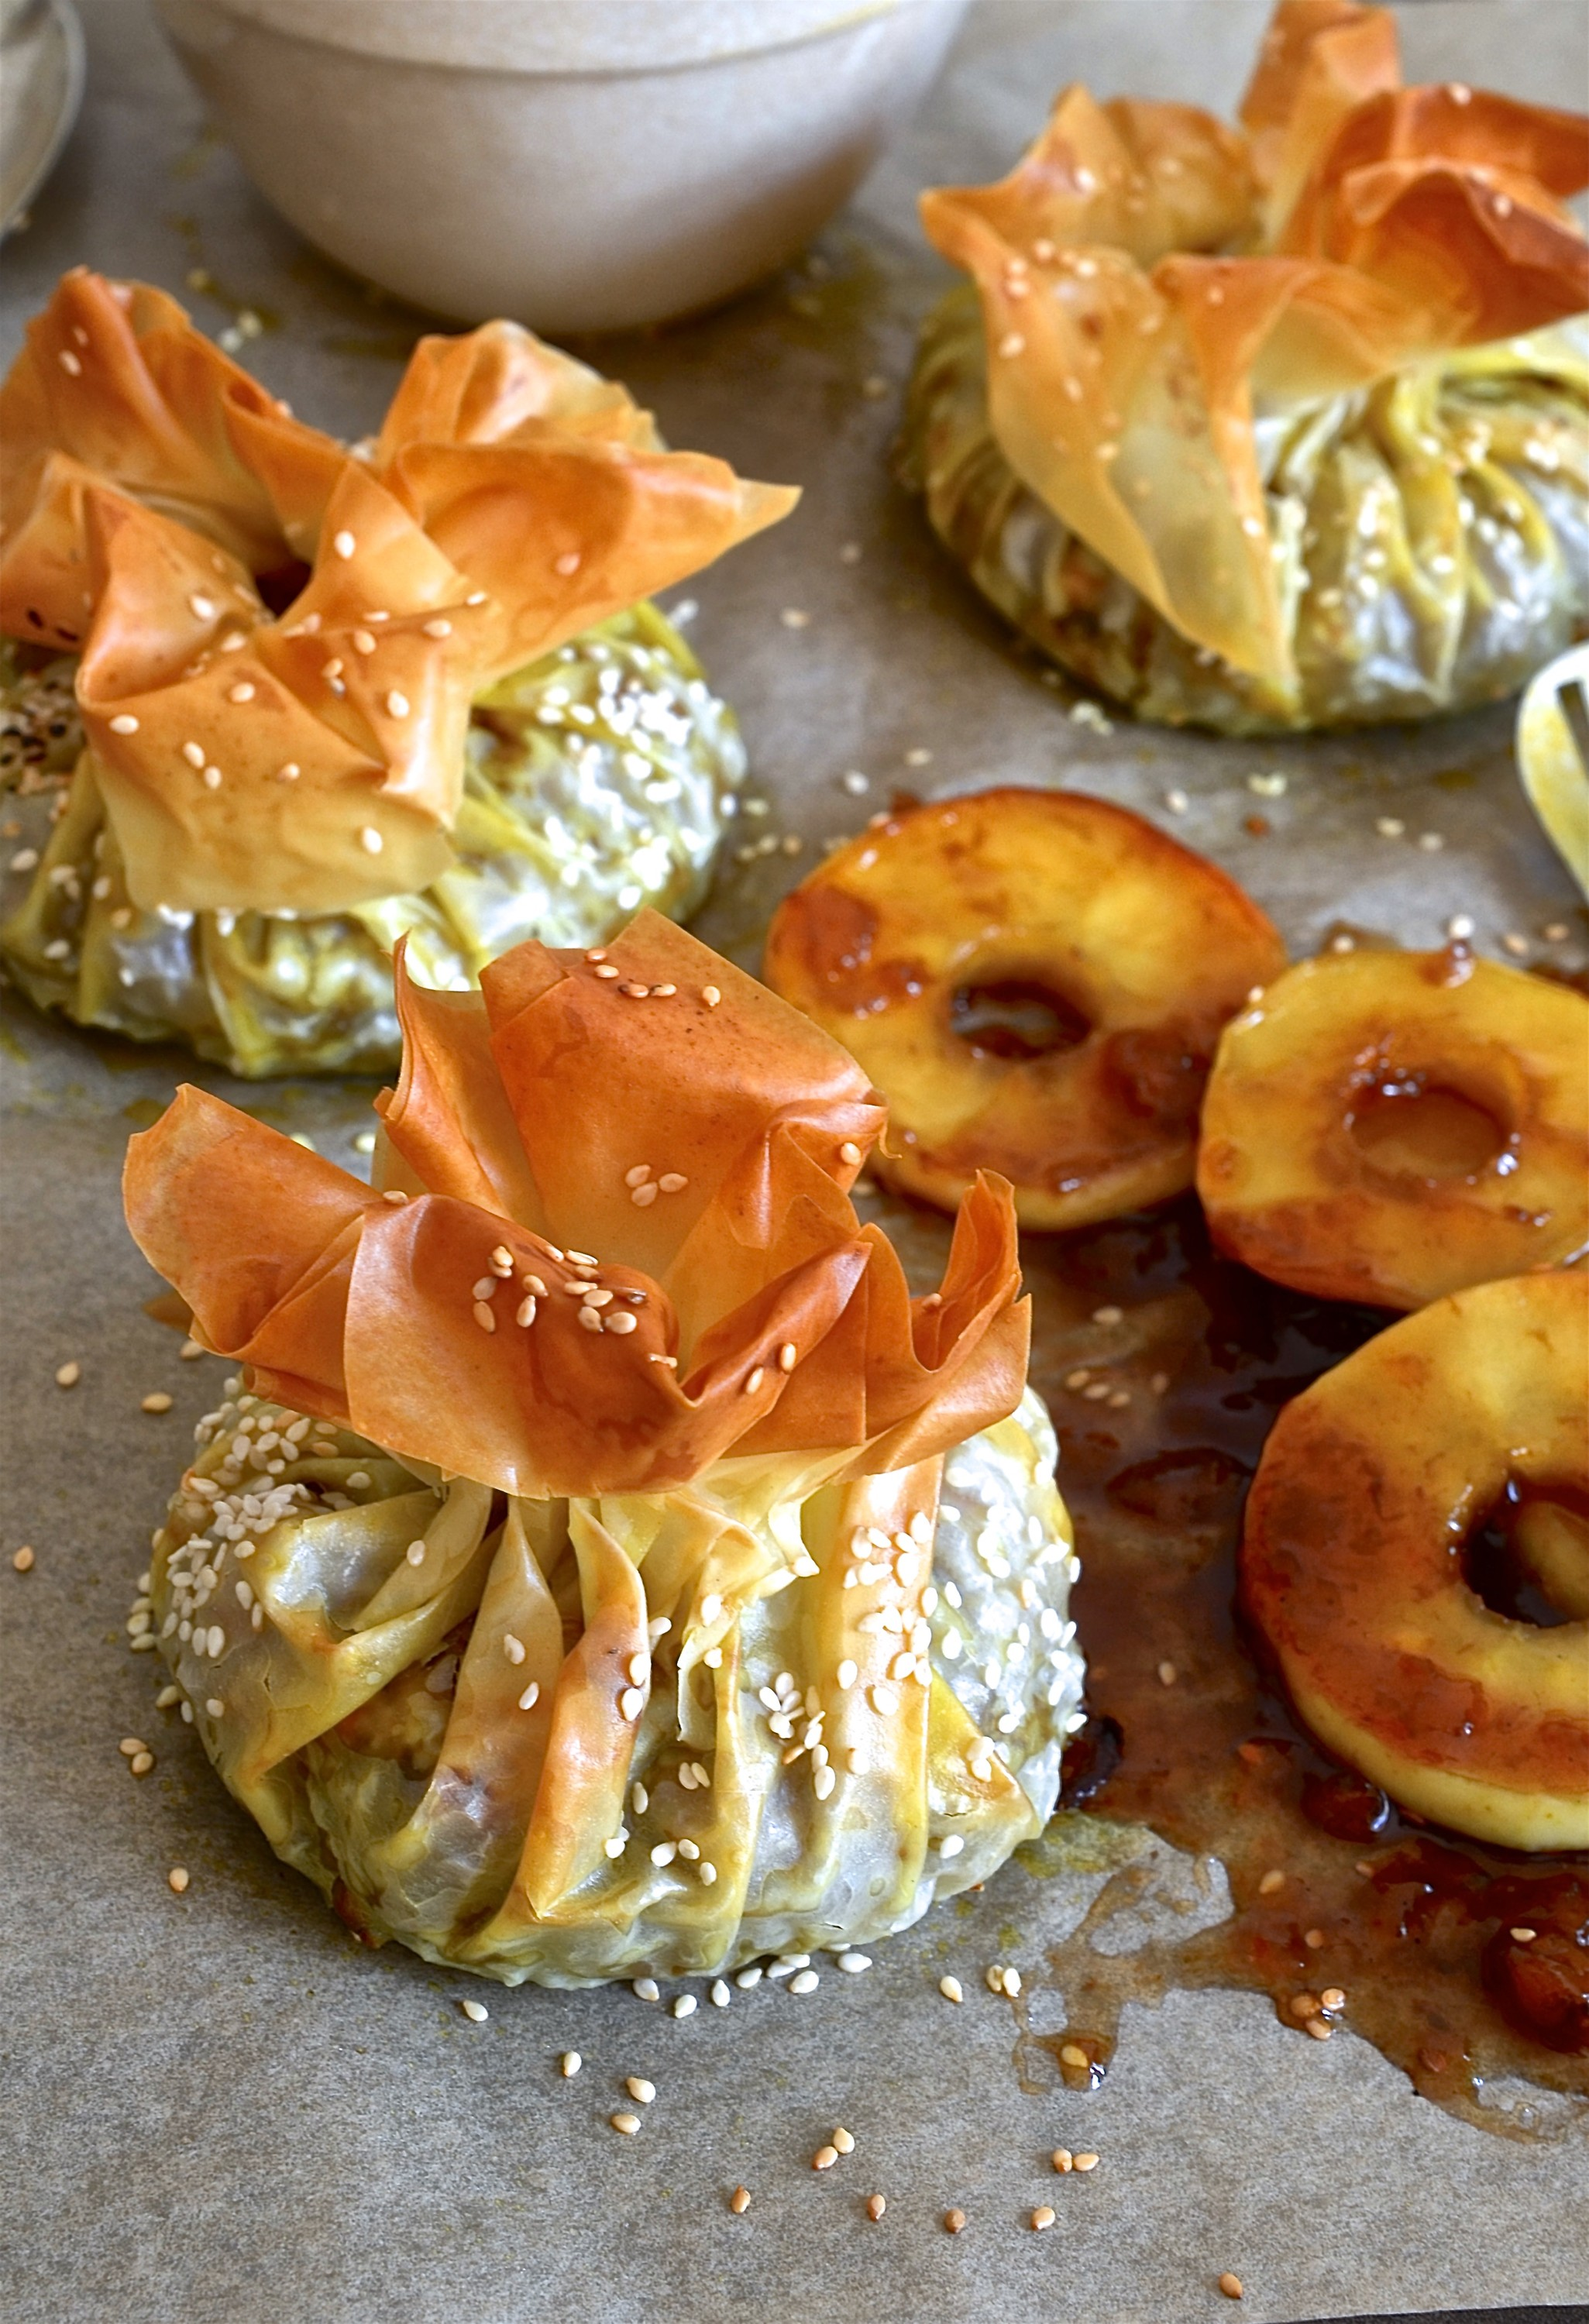 Bobotie filo parcels with apple ring chutney | Bibbyskitchen recipes